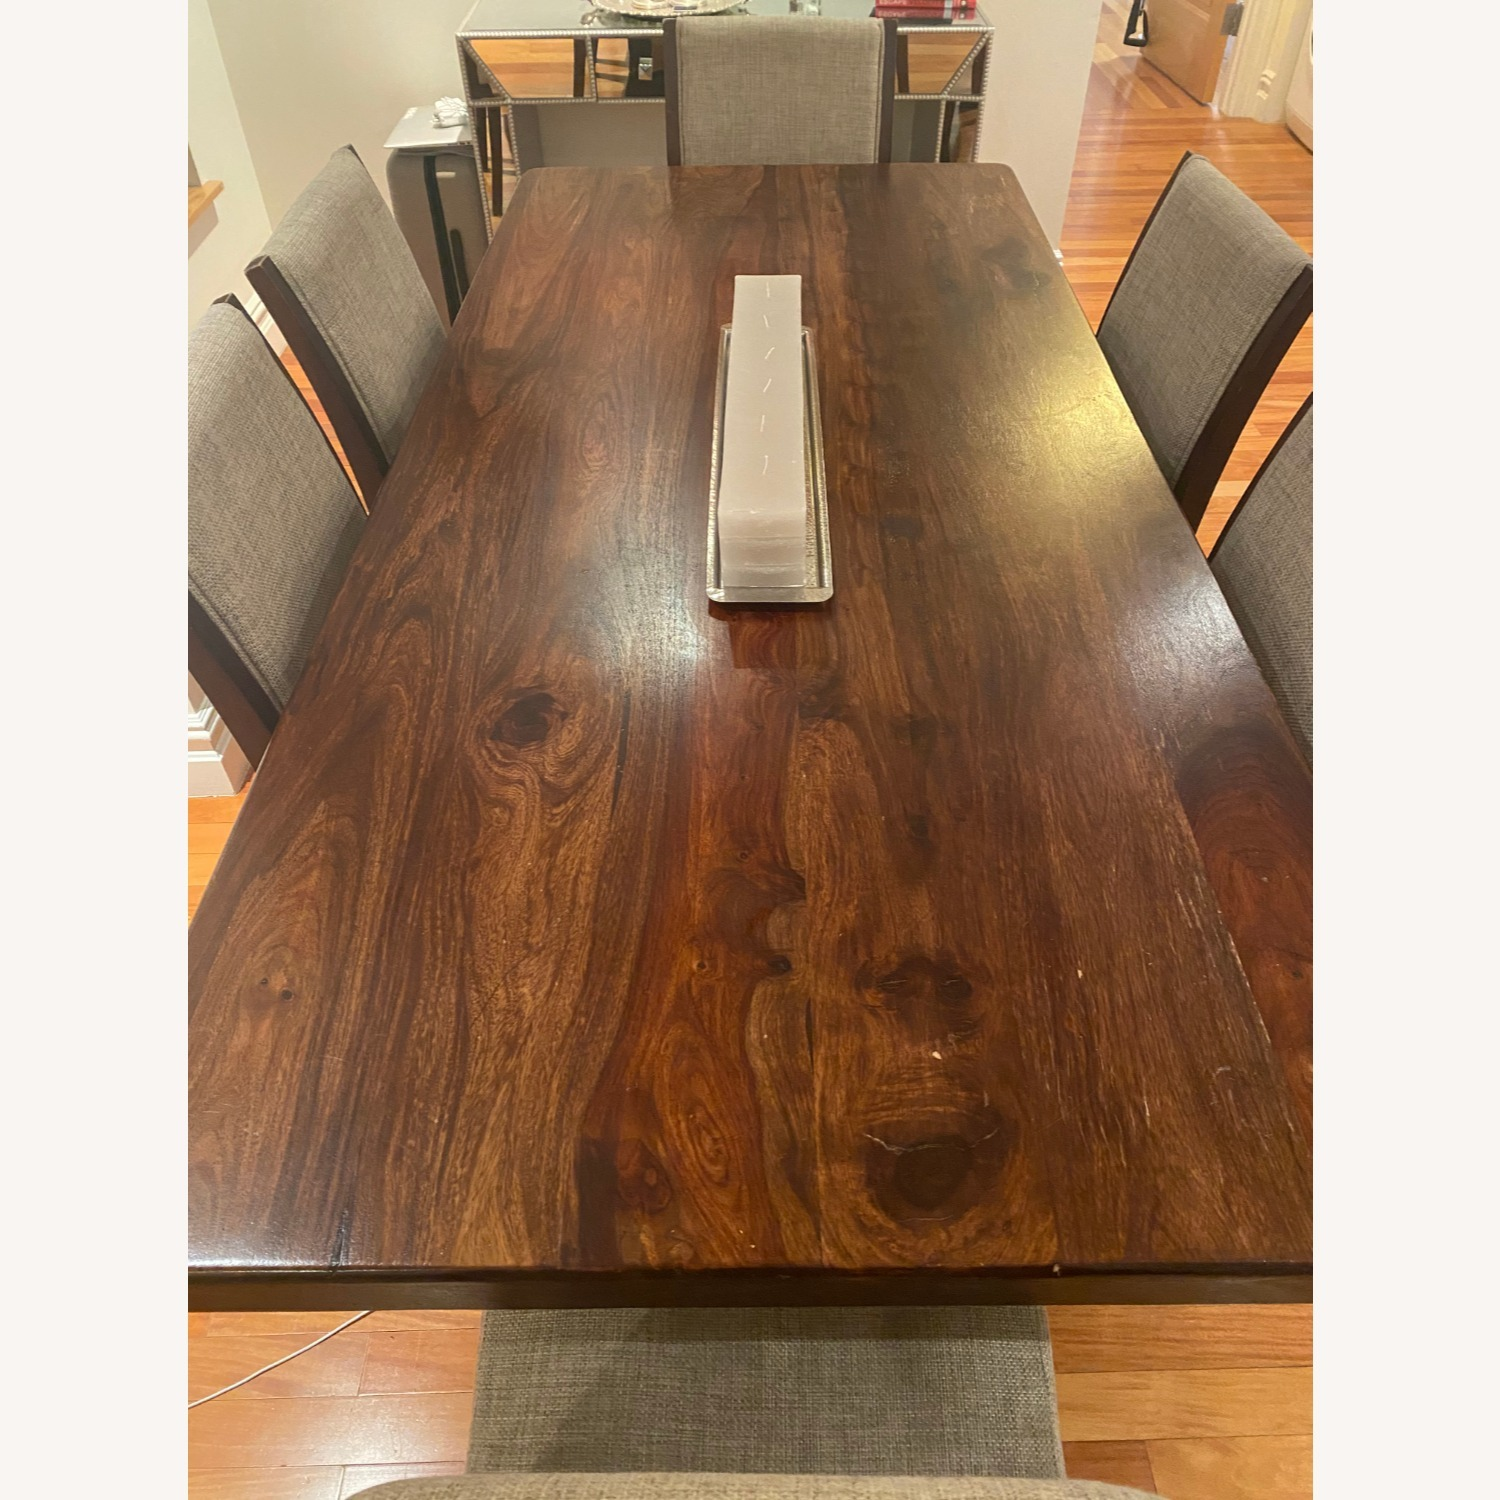 Pier 1 Imports Dark Wood Dining Table, Seats 6 - image-0